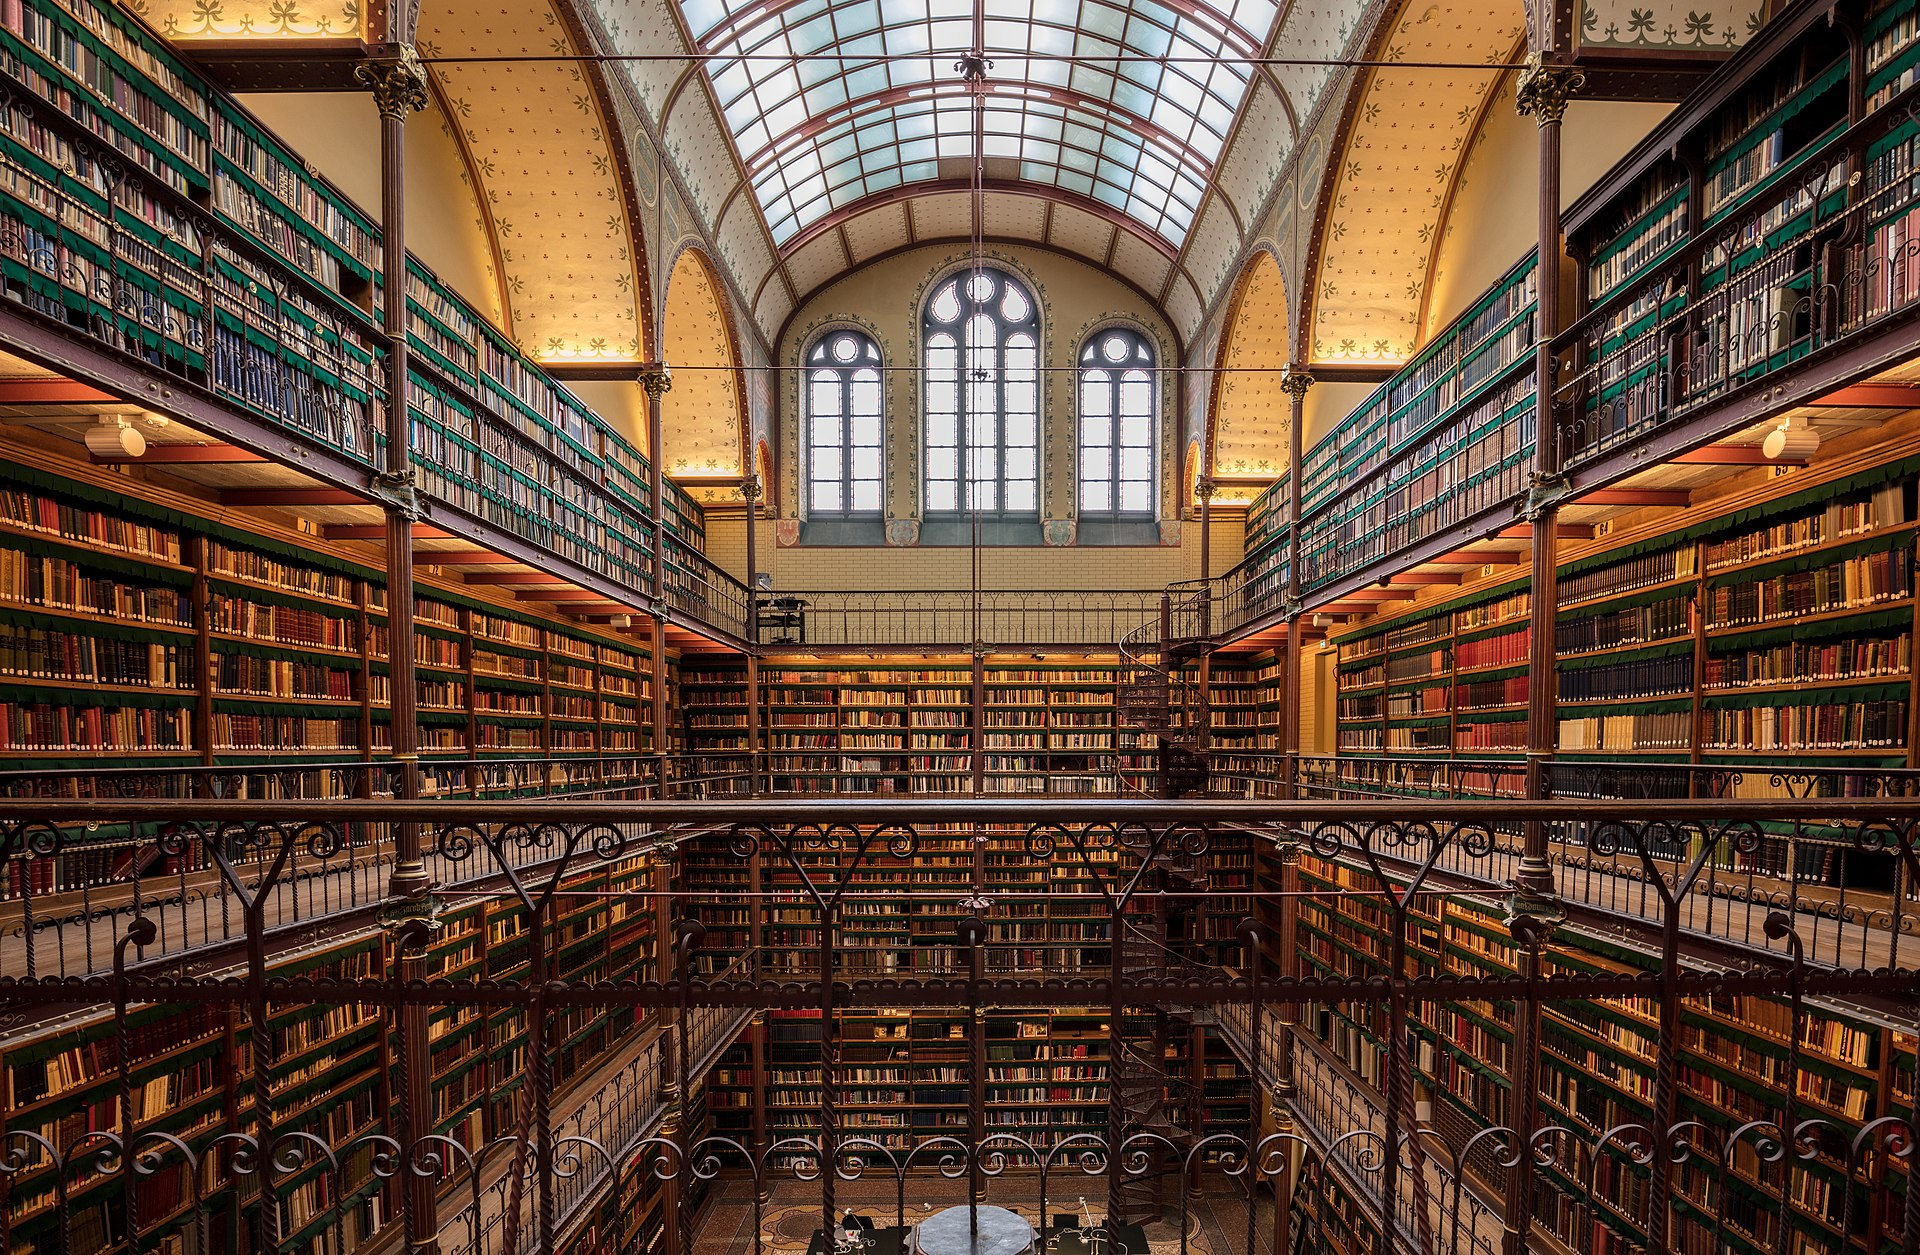 Pierre Cuypers, Library of the Rijksmuseum, 1886, Amsterdam, Netherlands.